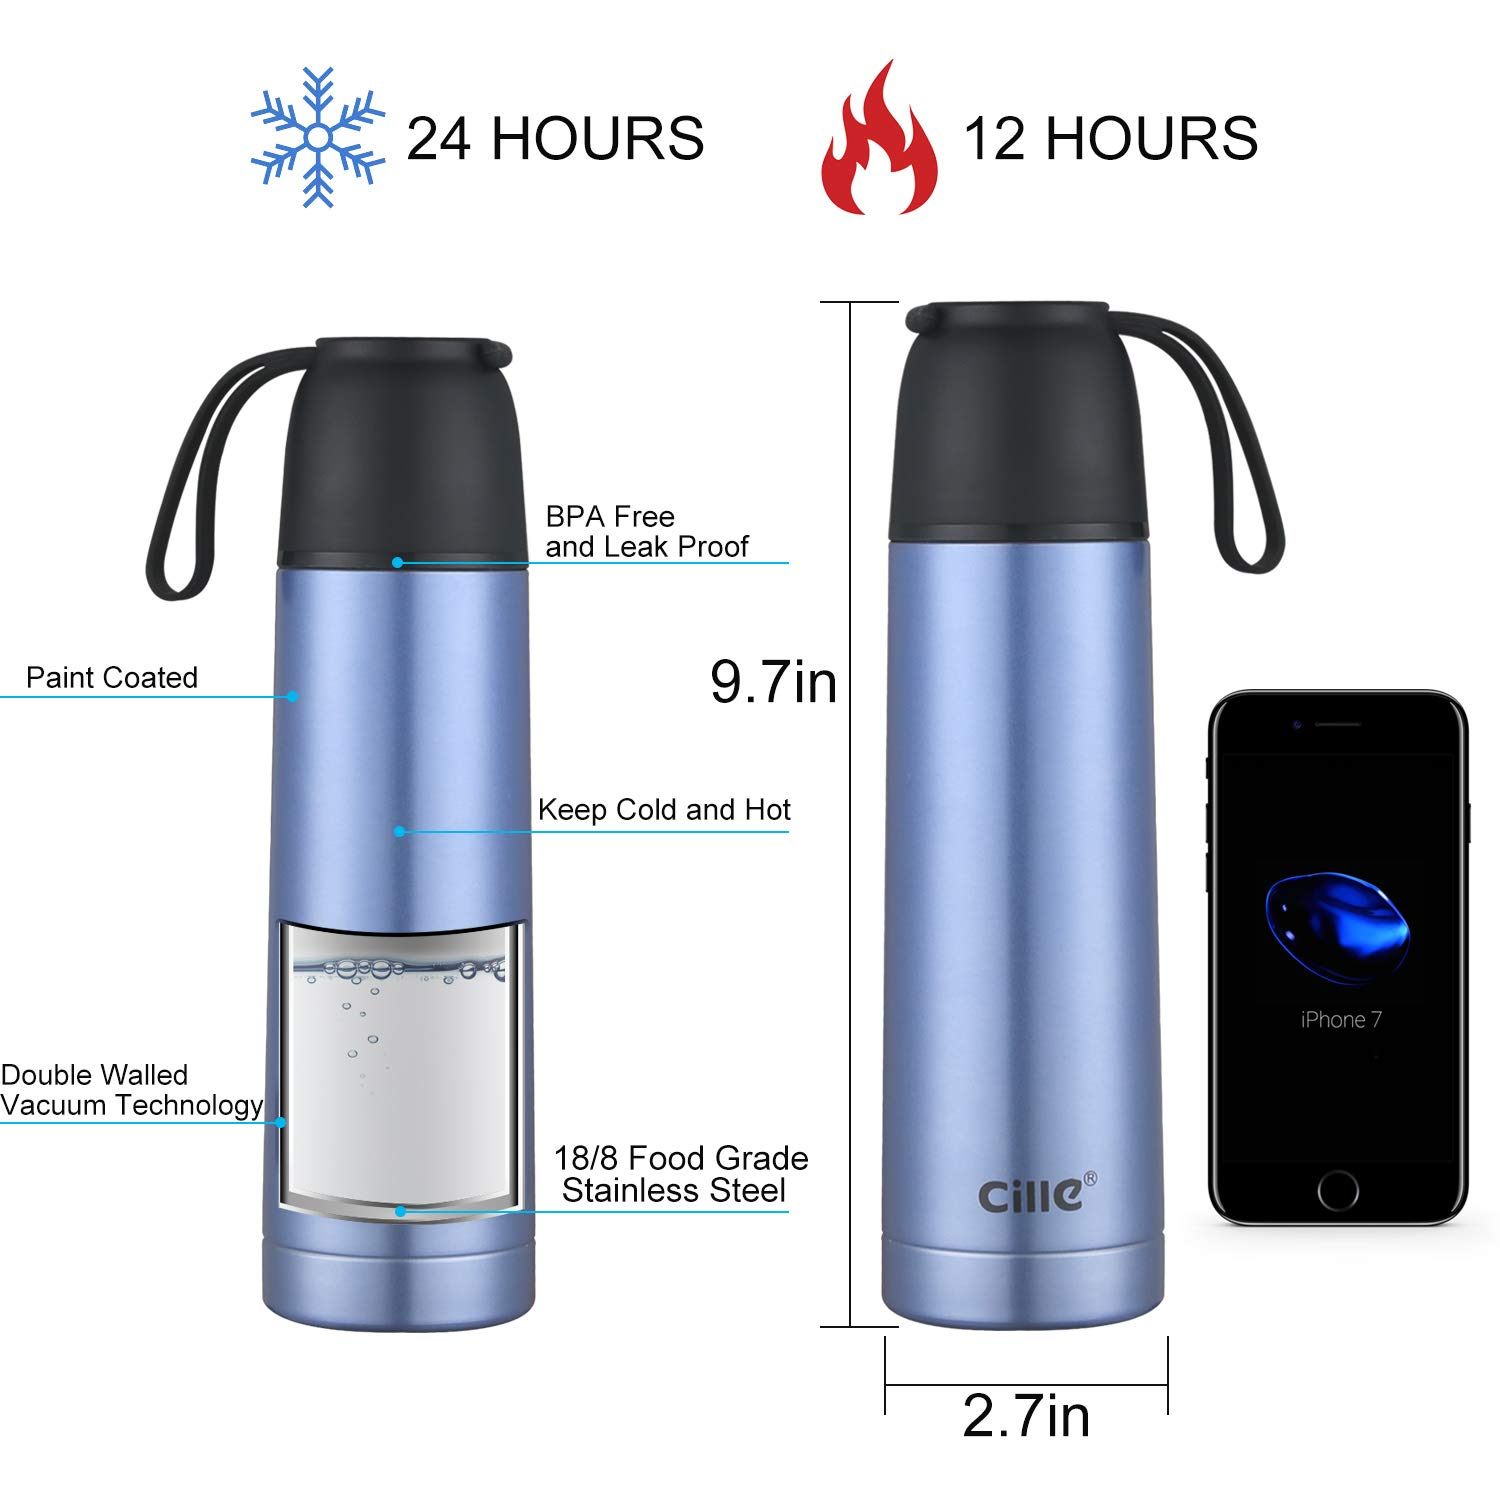 Cille 17 oz Insulated Water Bottles 500ml Blue Water Bottle Stainless Steel,Metal Double Walled Vacuum Flask Leak proof Bicycle Water Bottle for Teen Reusable Sports Bottle